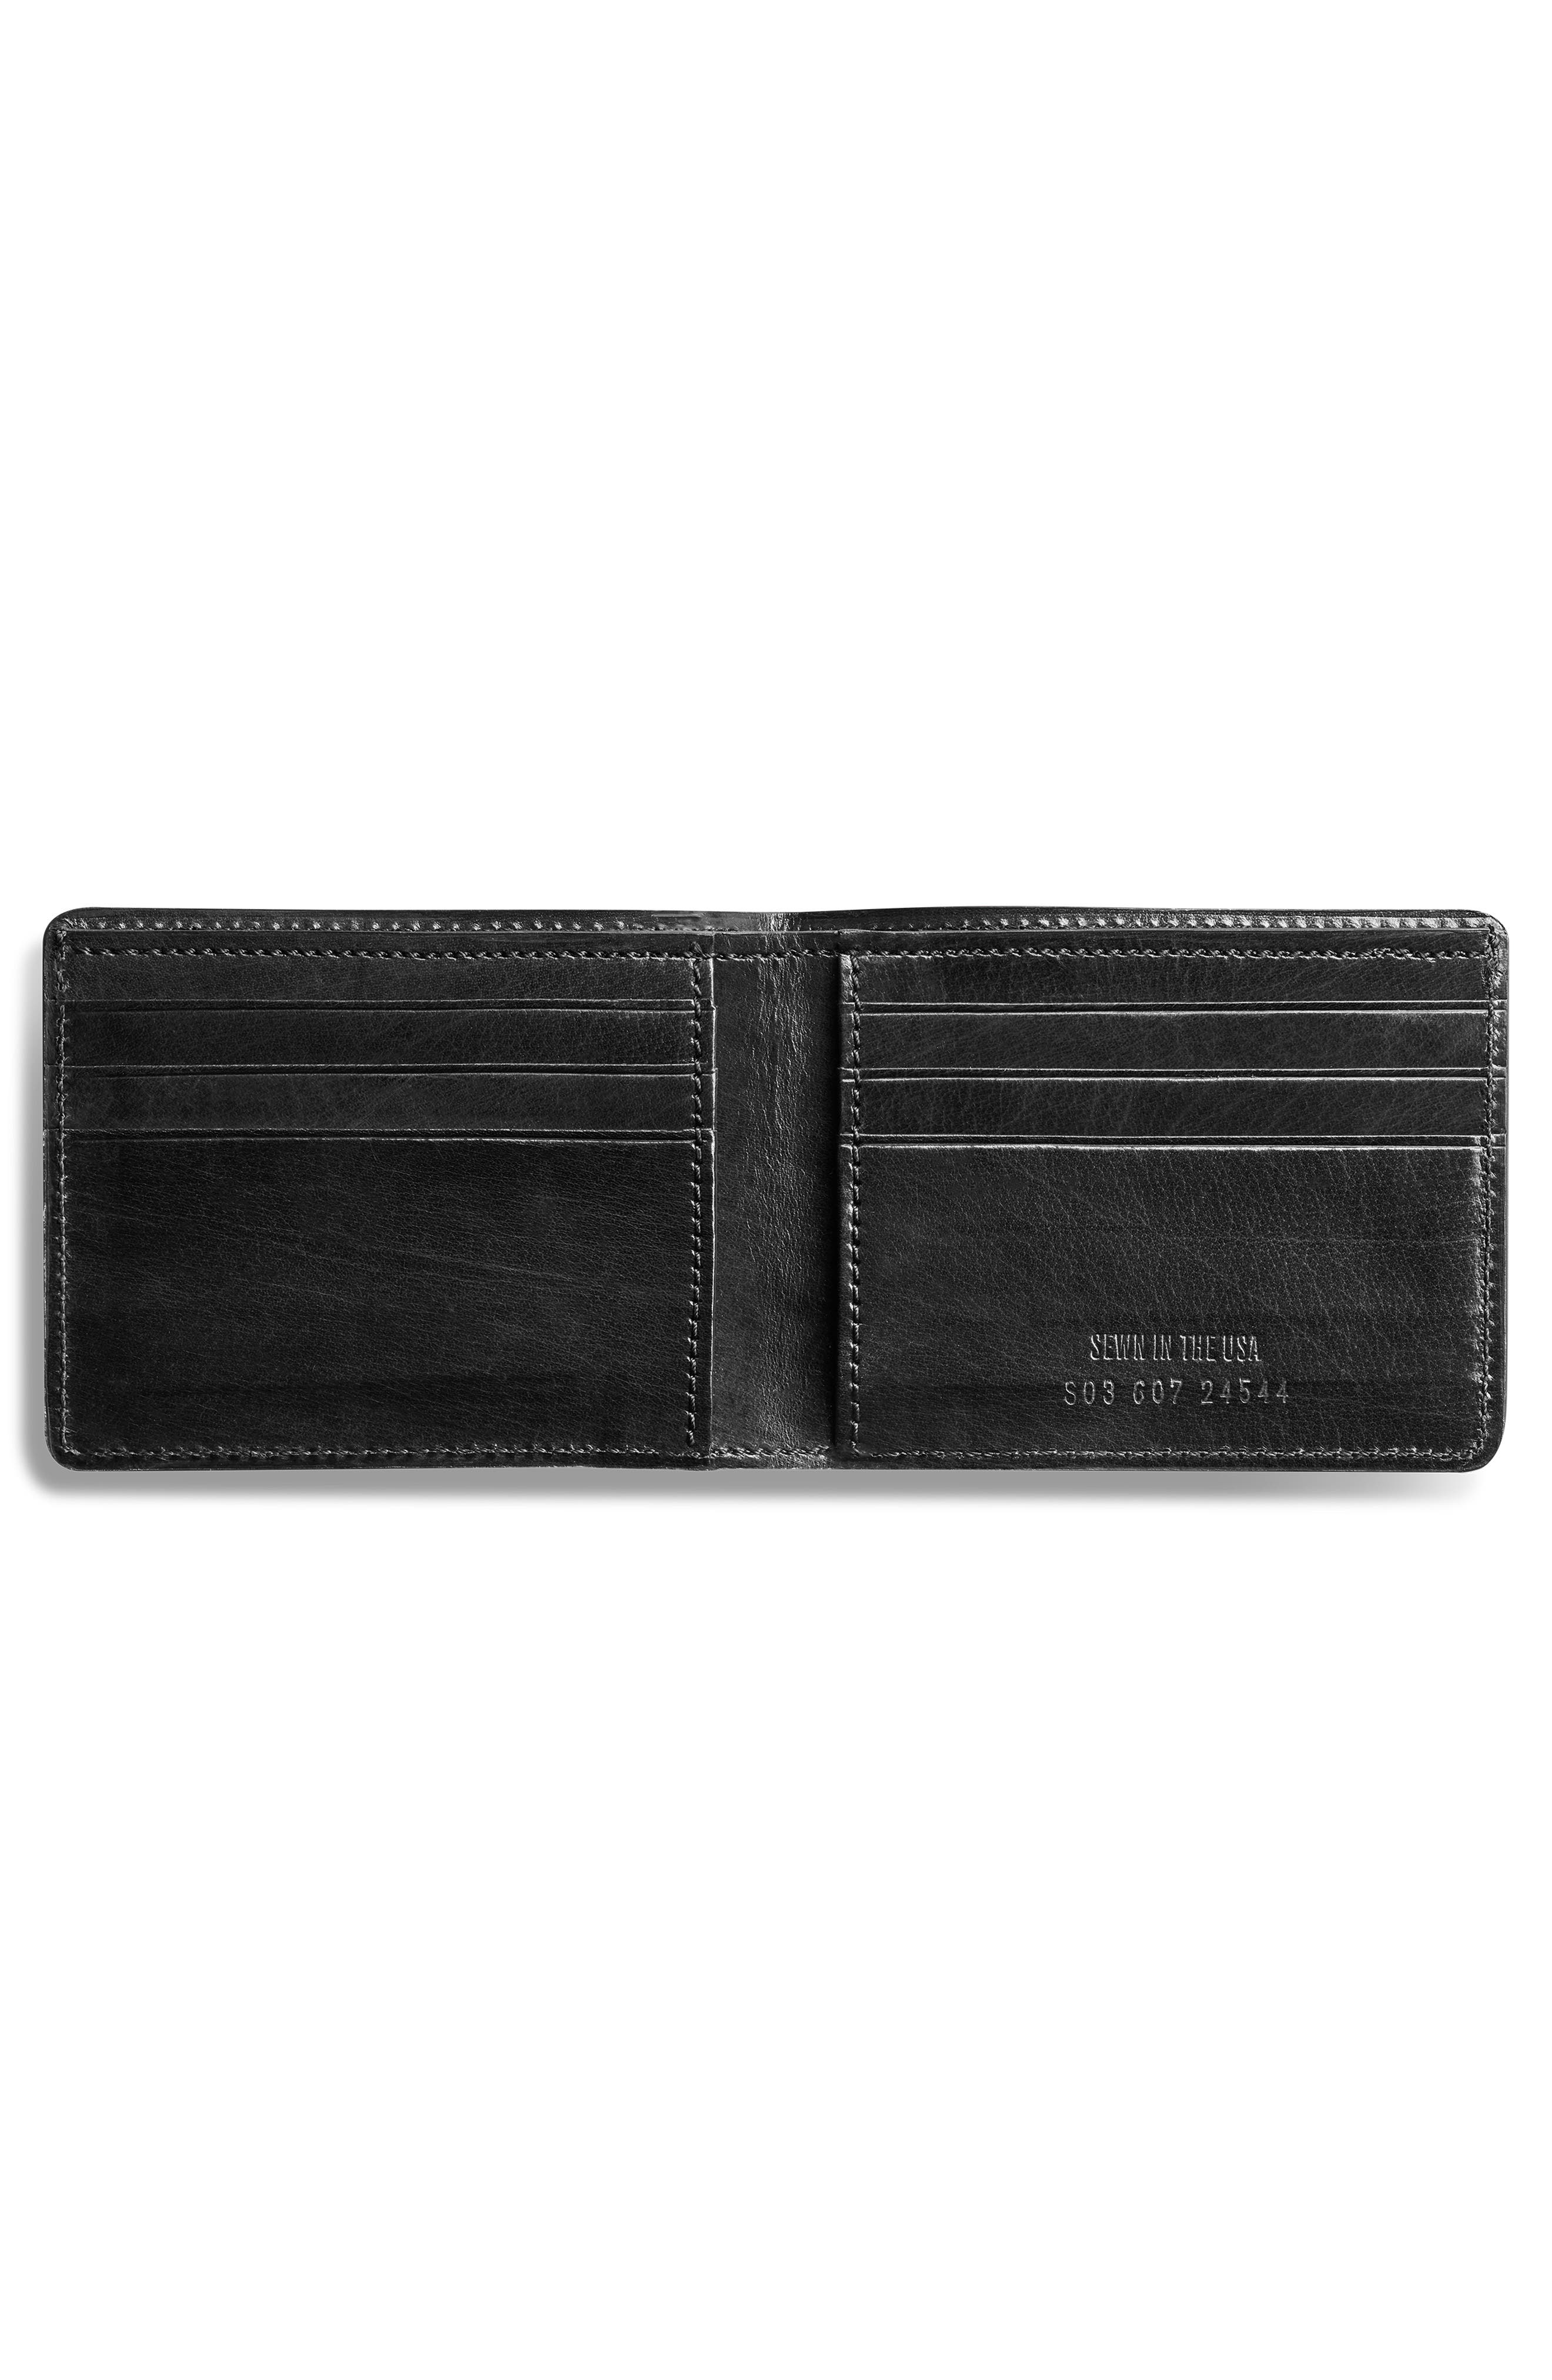 Outlaw Wallet,                             Alternate thumbnail 2, color,                             BLACK